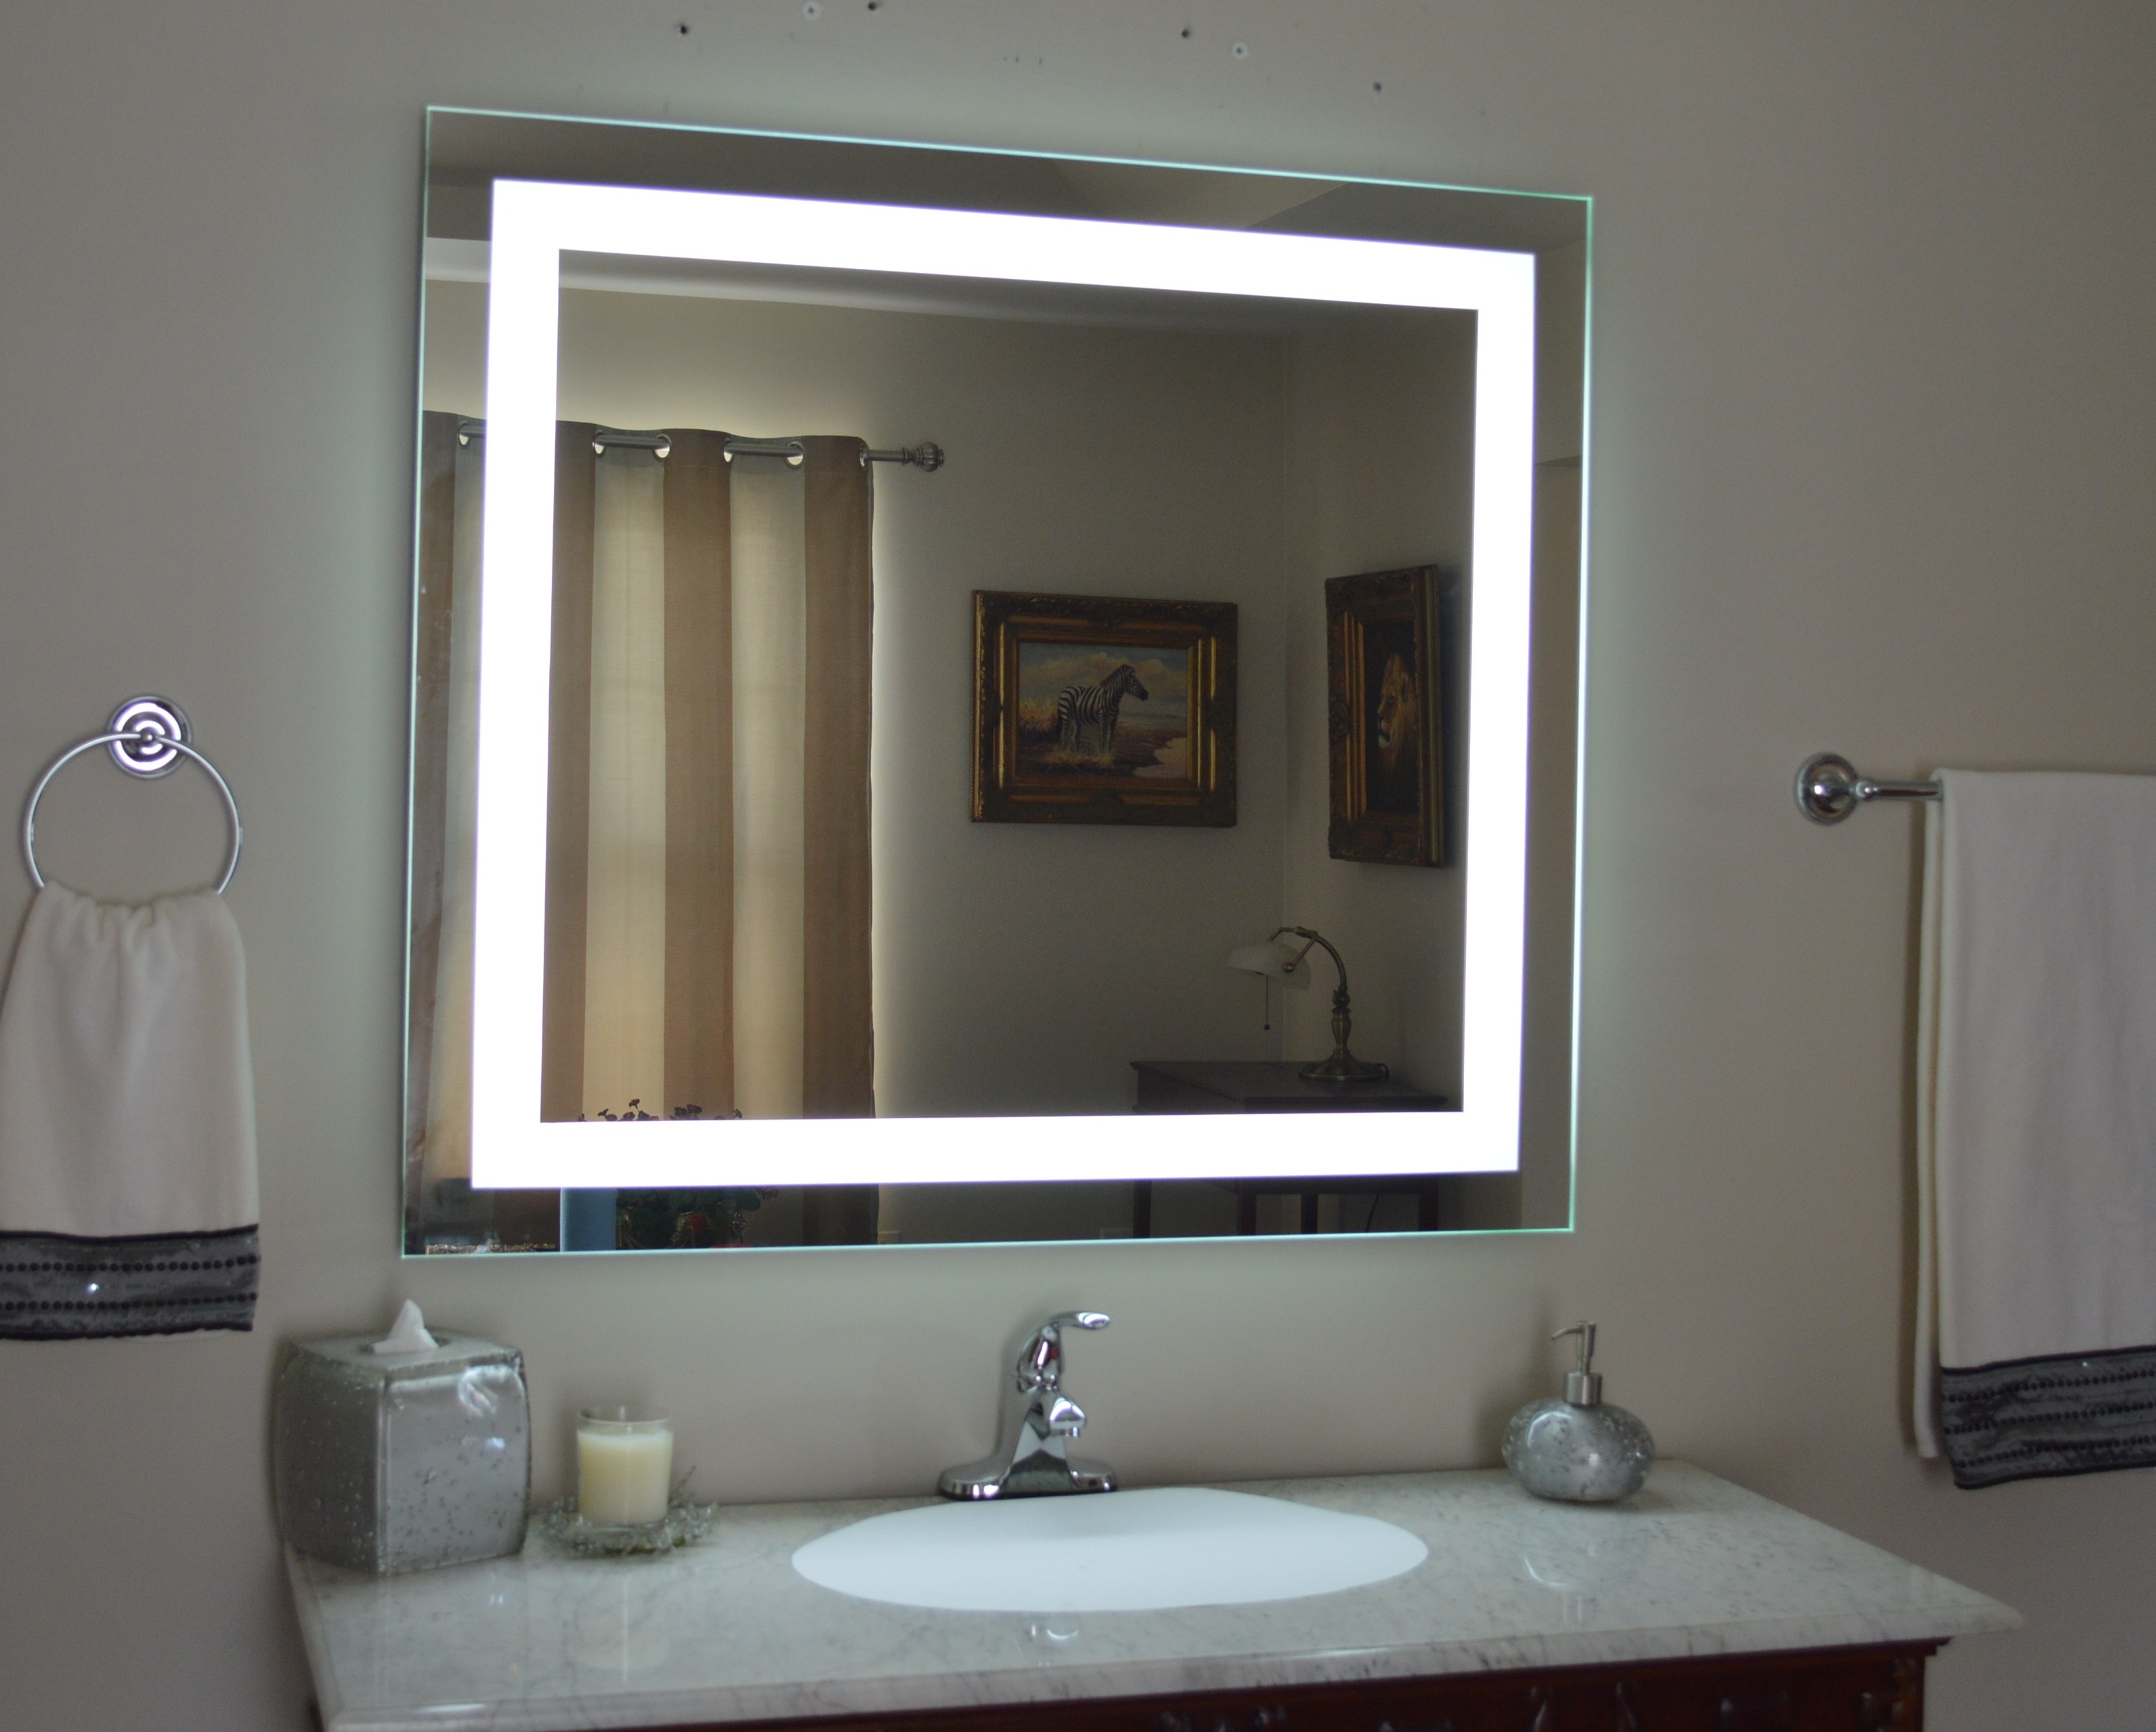 Decorative Mirrors Bathroom Vanities Ecommerce Mirrors Marble Intended For Illuminated Dressing Table Mirrors (Image 8 of 15)